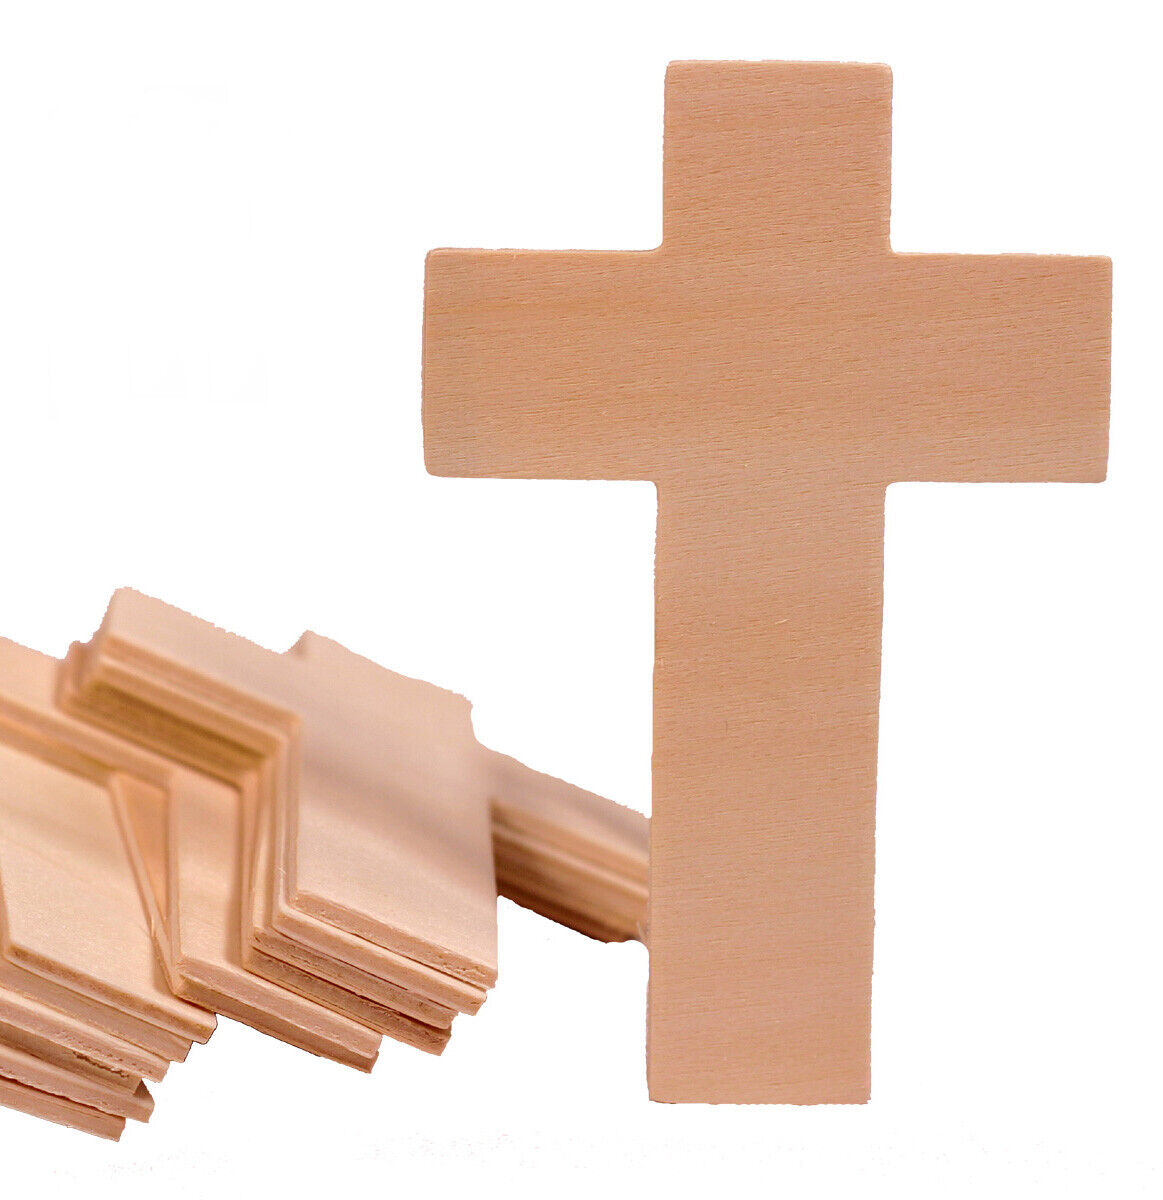 25 pack – Unfinished Wood Cross Shape Cutout Slices, 4.25 Inch, Wooden Craft DIY Crafting Pieces